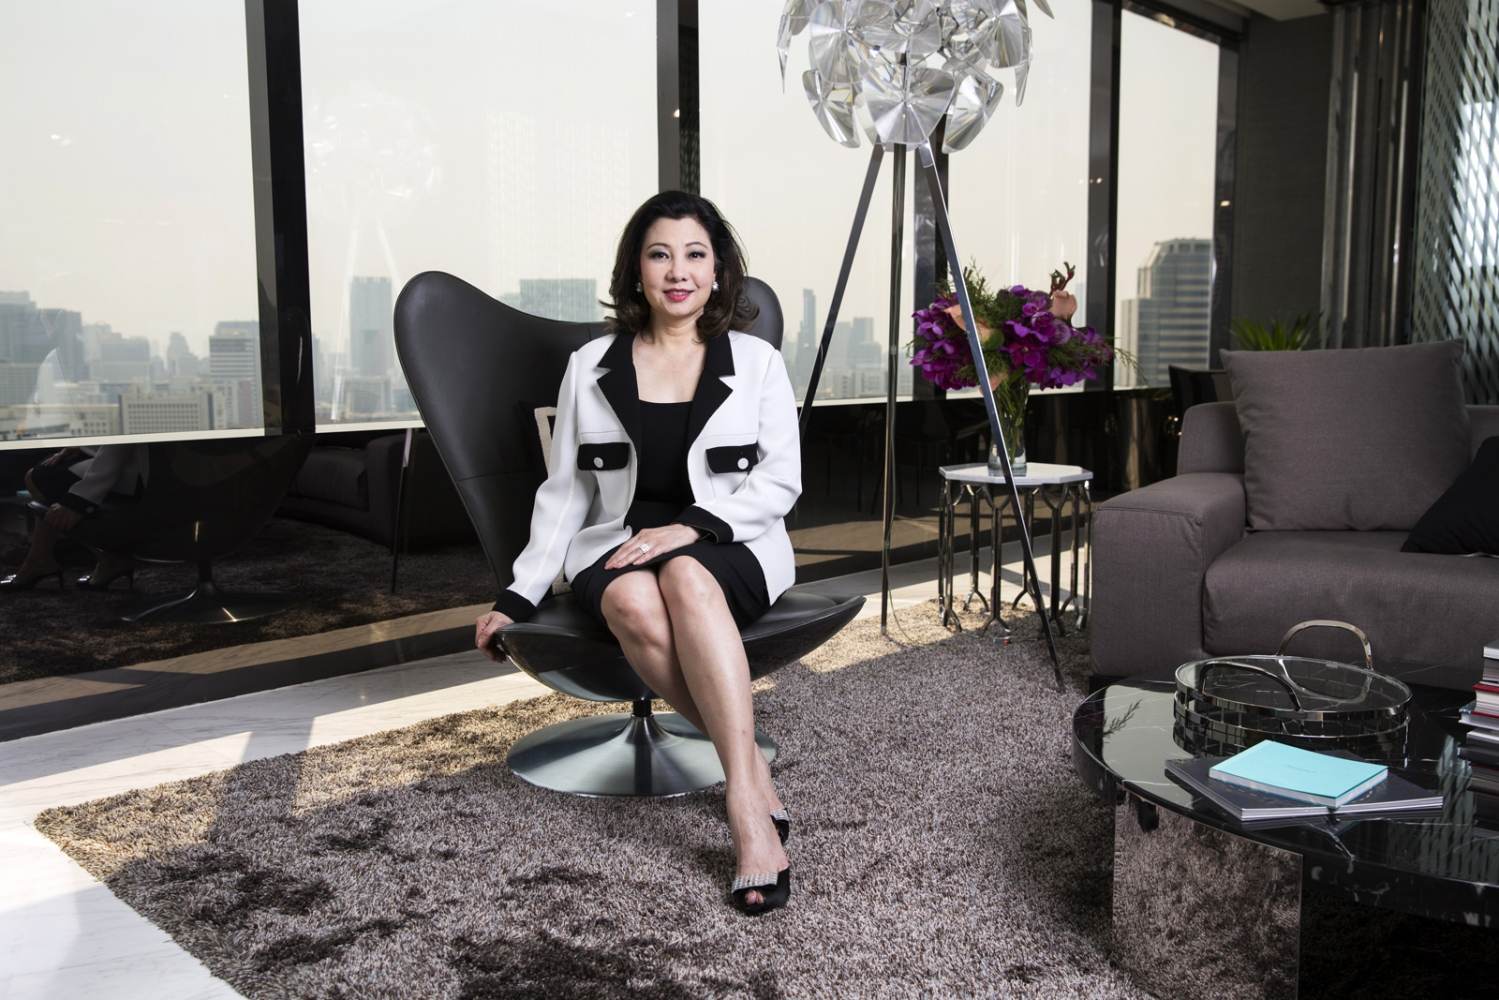 Chadatip Chutrakul, 55, inside the sales office of ICONSIAM in Bangkok. She is the CEO of Siam Piwat, a Thai retail and property development company. Born in 1961, Chadatip attended Chulalongkorn University in Bangkok, graduating in 1982 with a B.A. in banking and finance. She spent several years with the British insurance firms of Sedgwick Offshore Resources and Willis Faber & Dumas, before coming back to Thailand, managing energy insurance services for domestic firm Dhipaya Insurance and has been with Siam Piwat since 1986.  Bangkok, Thailand